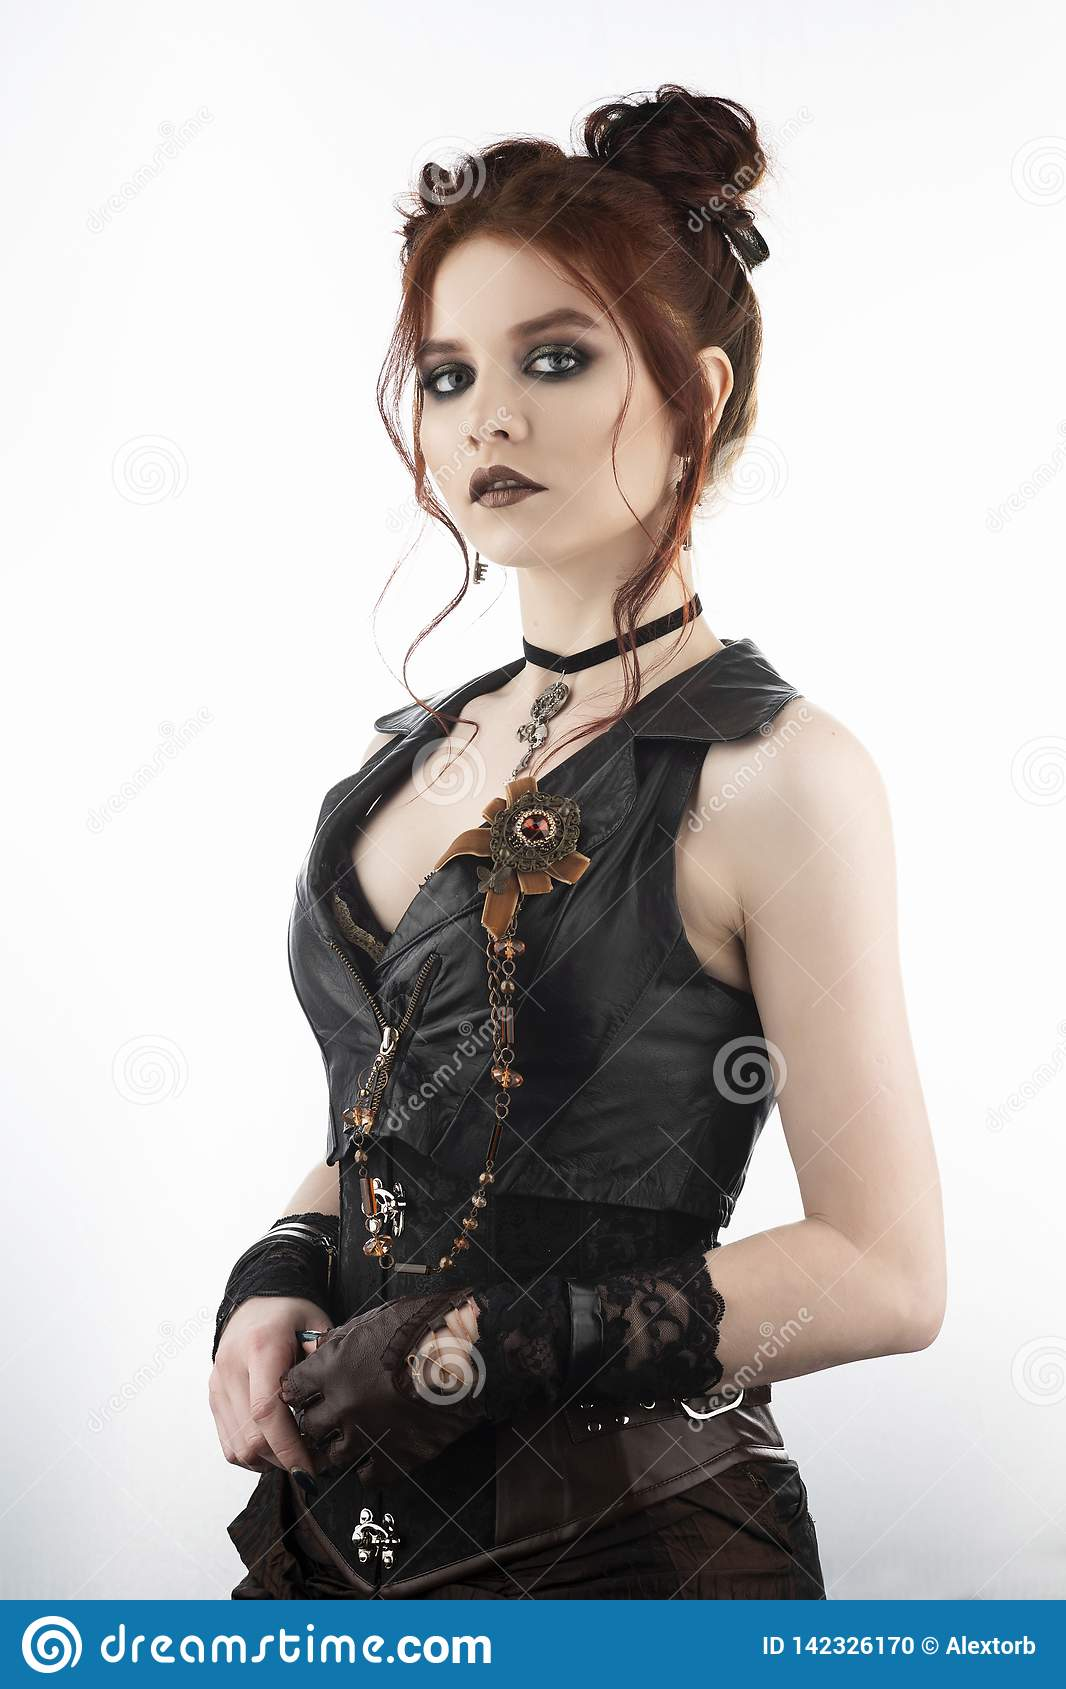 A beautiful redhead cosplayer girl wearing a Victorian-style steampunk costume with big breasts in a deep neckline. Isolated on